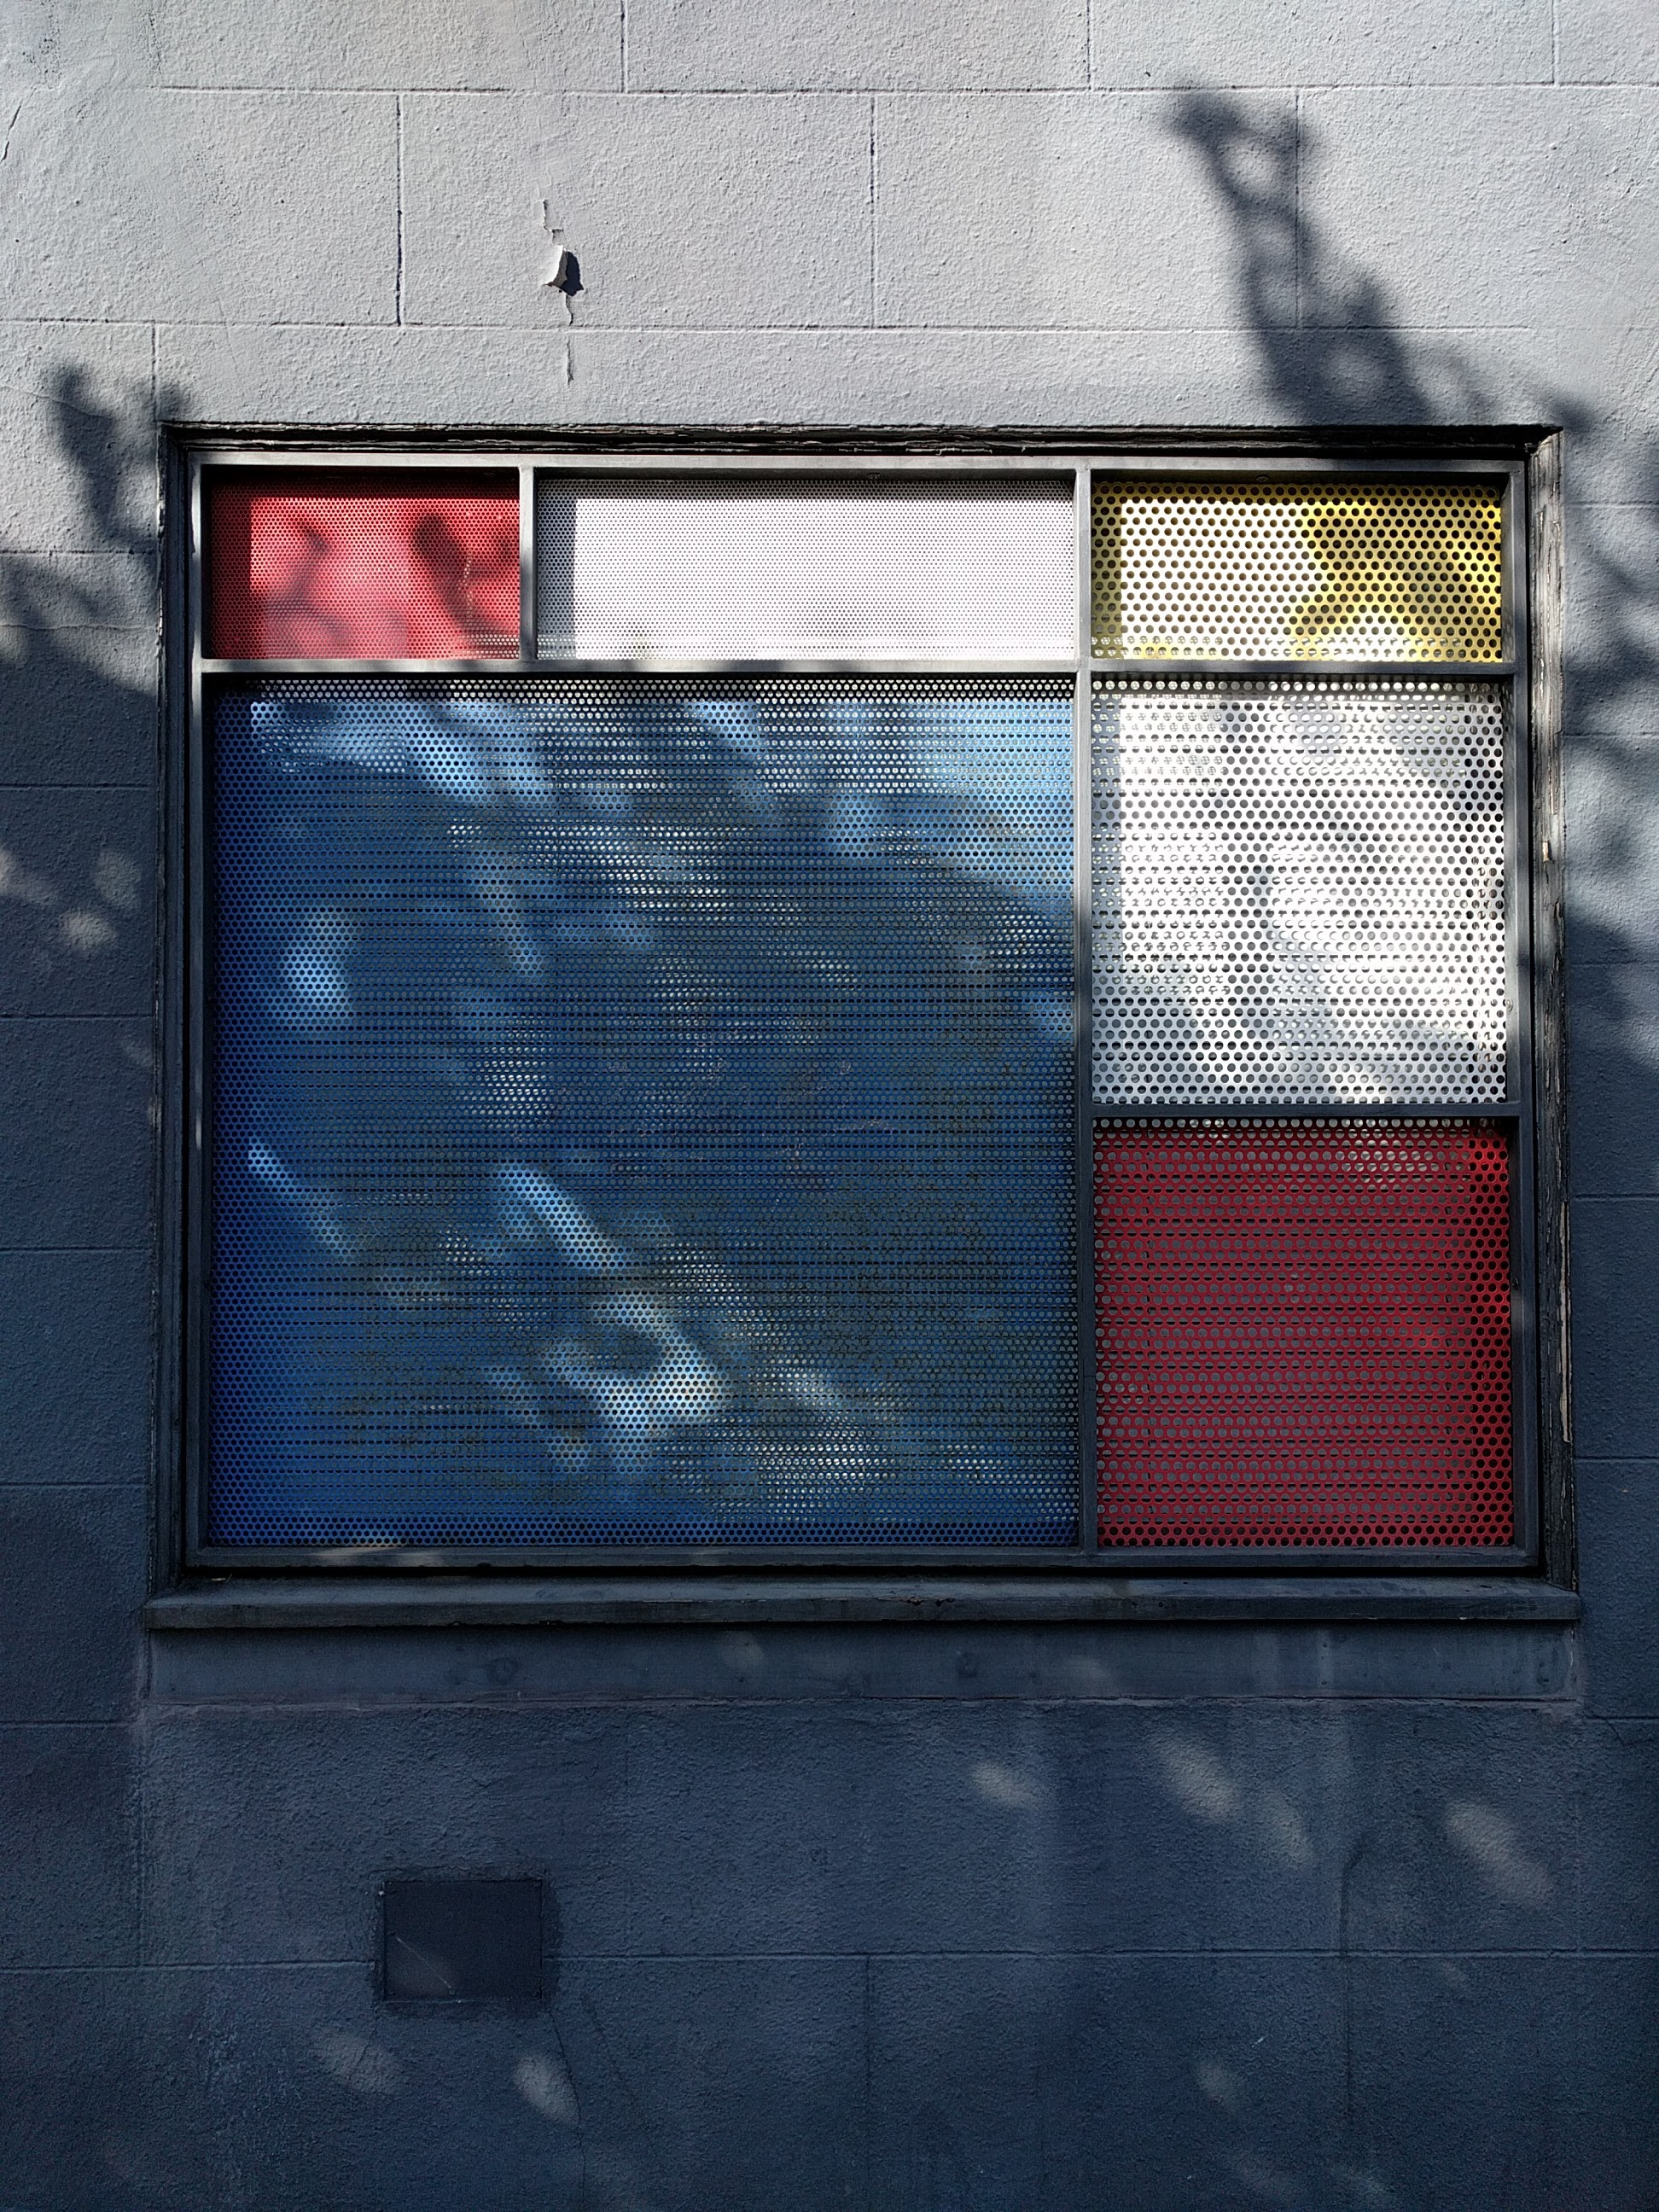 mondrian style window in san francisco